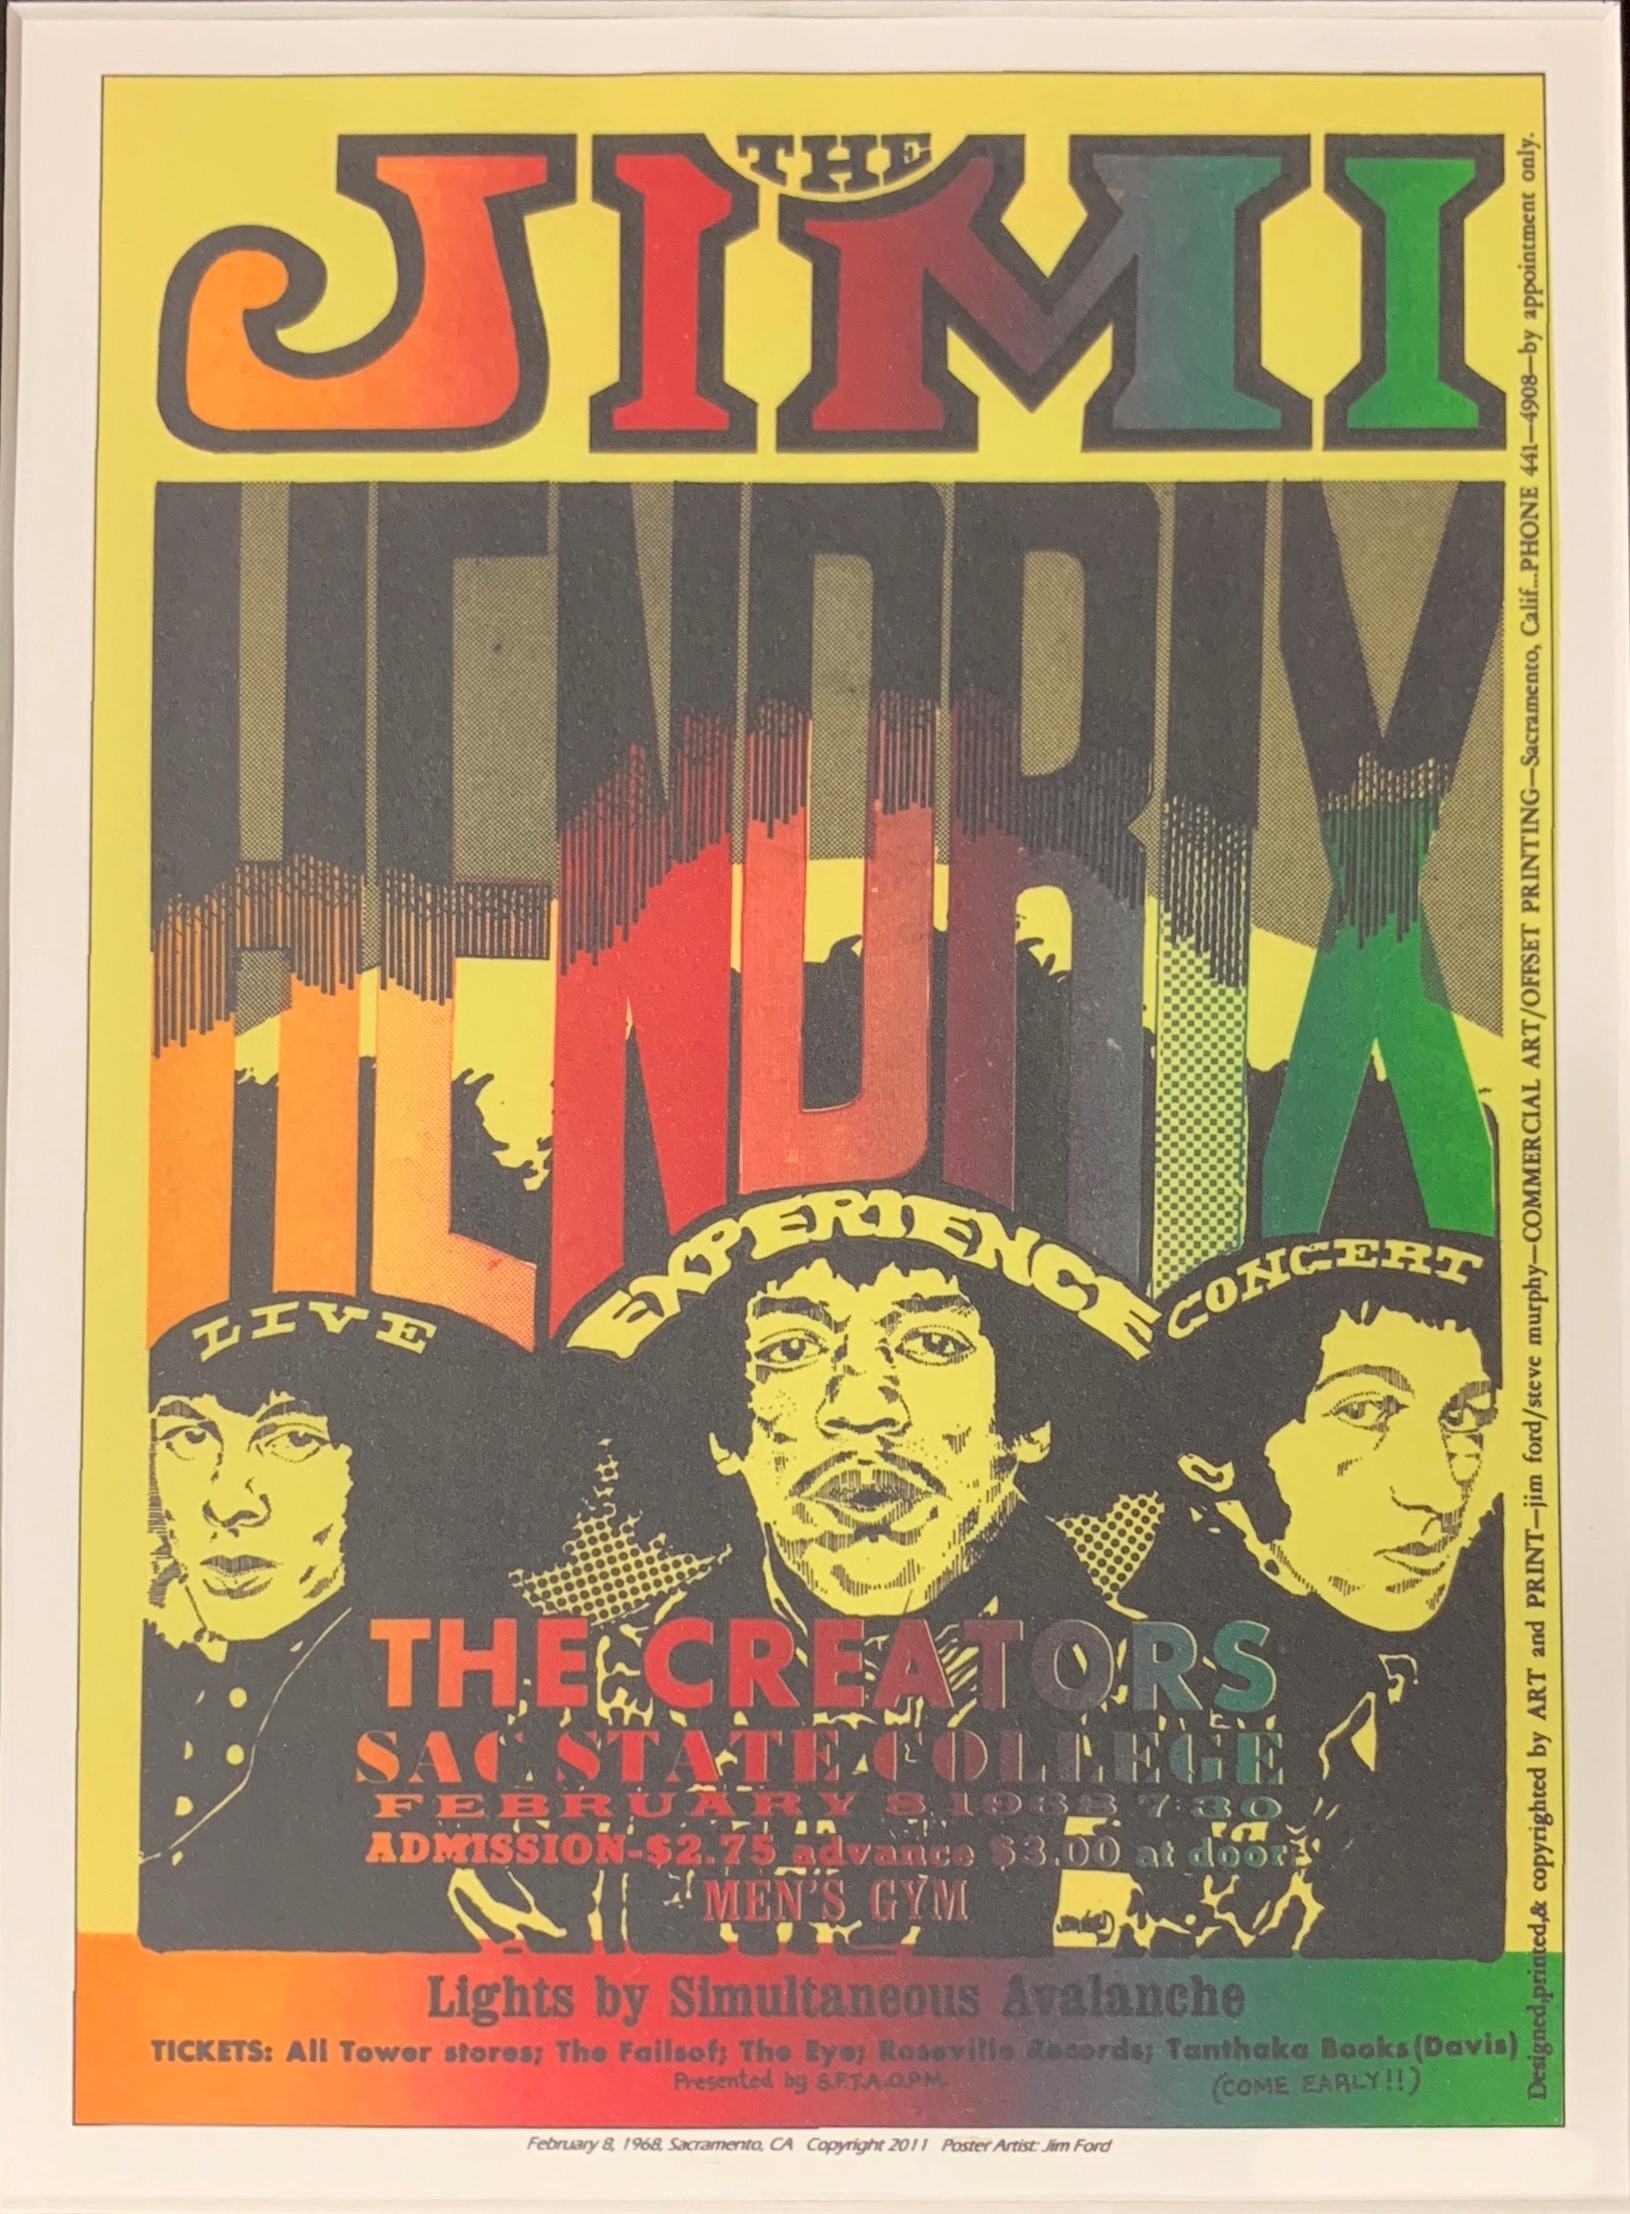 This poster announced a concert by Jimi Hendrix at Sac State in 1968. Cost? $2.75 advance, $3 at the door. (Image courtesy of Dennis Newhall)